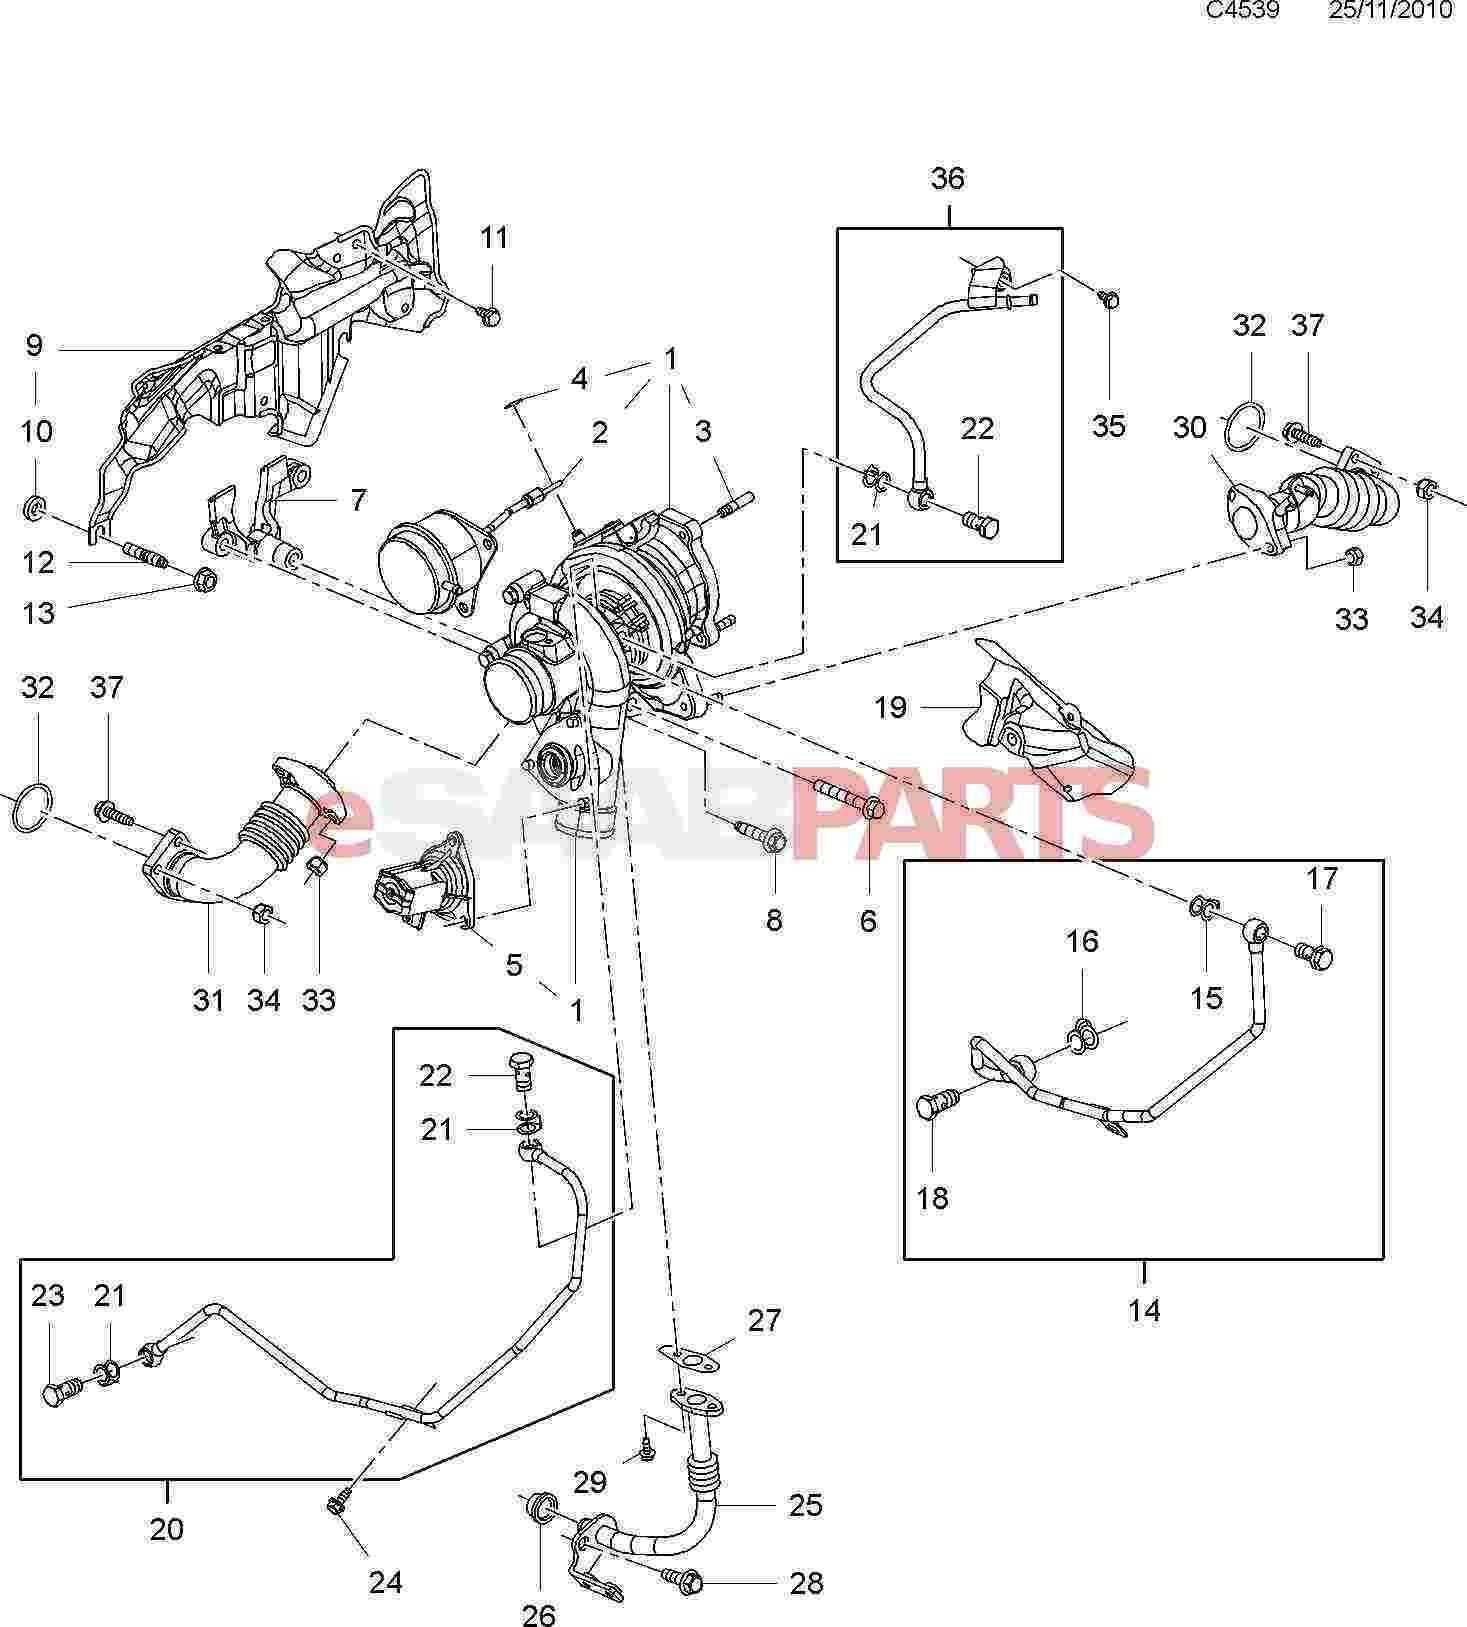 hight resolution of saab 9 7x wiring diagram wiring library saab 9 3 engine diagram saab 9 7x wiring